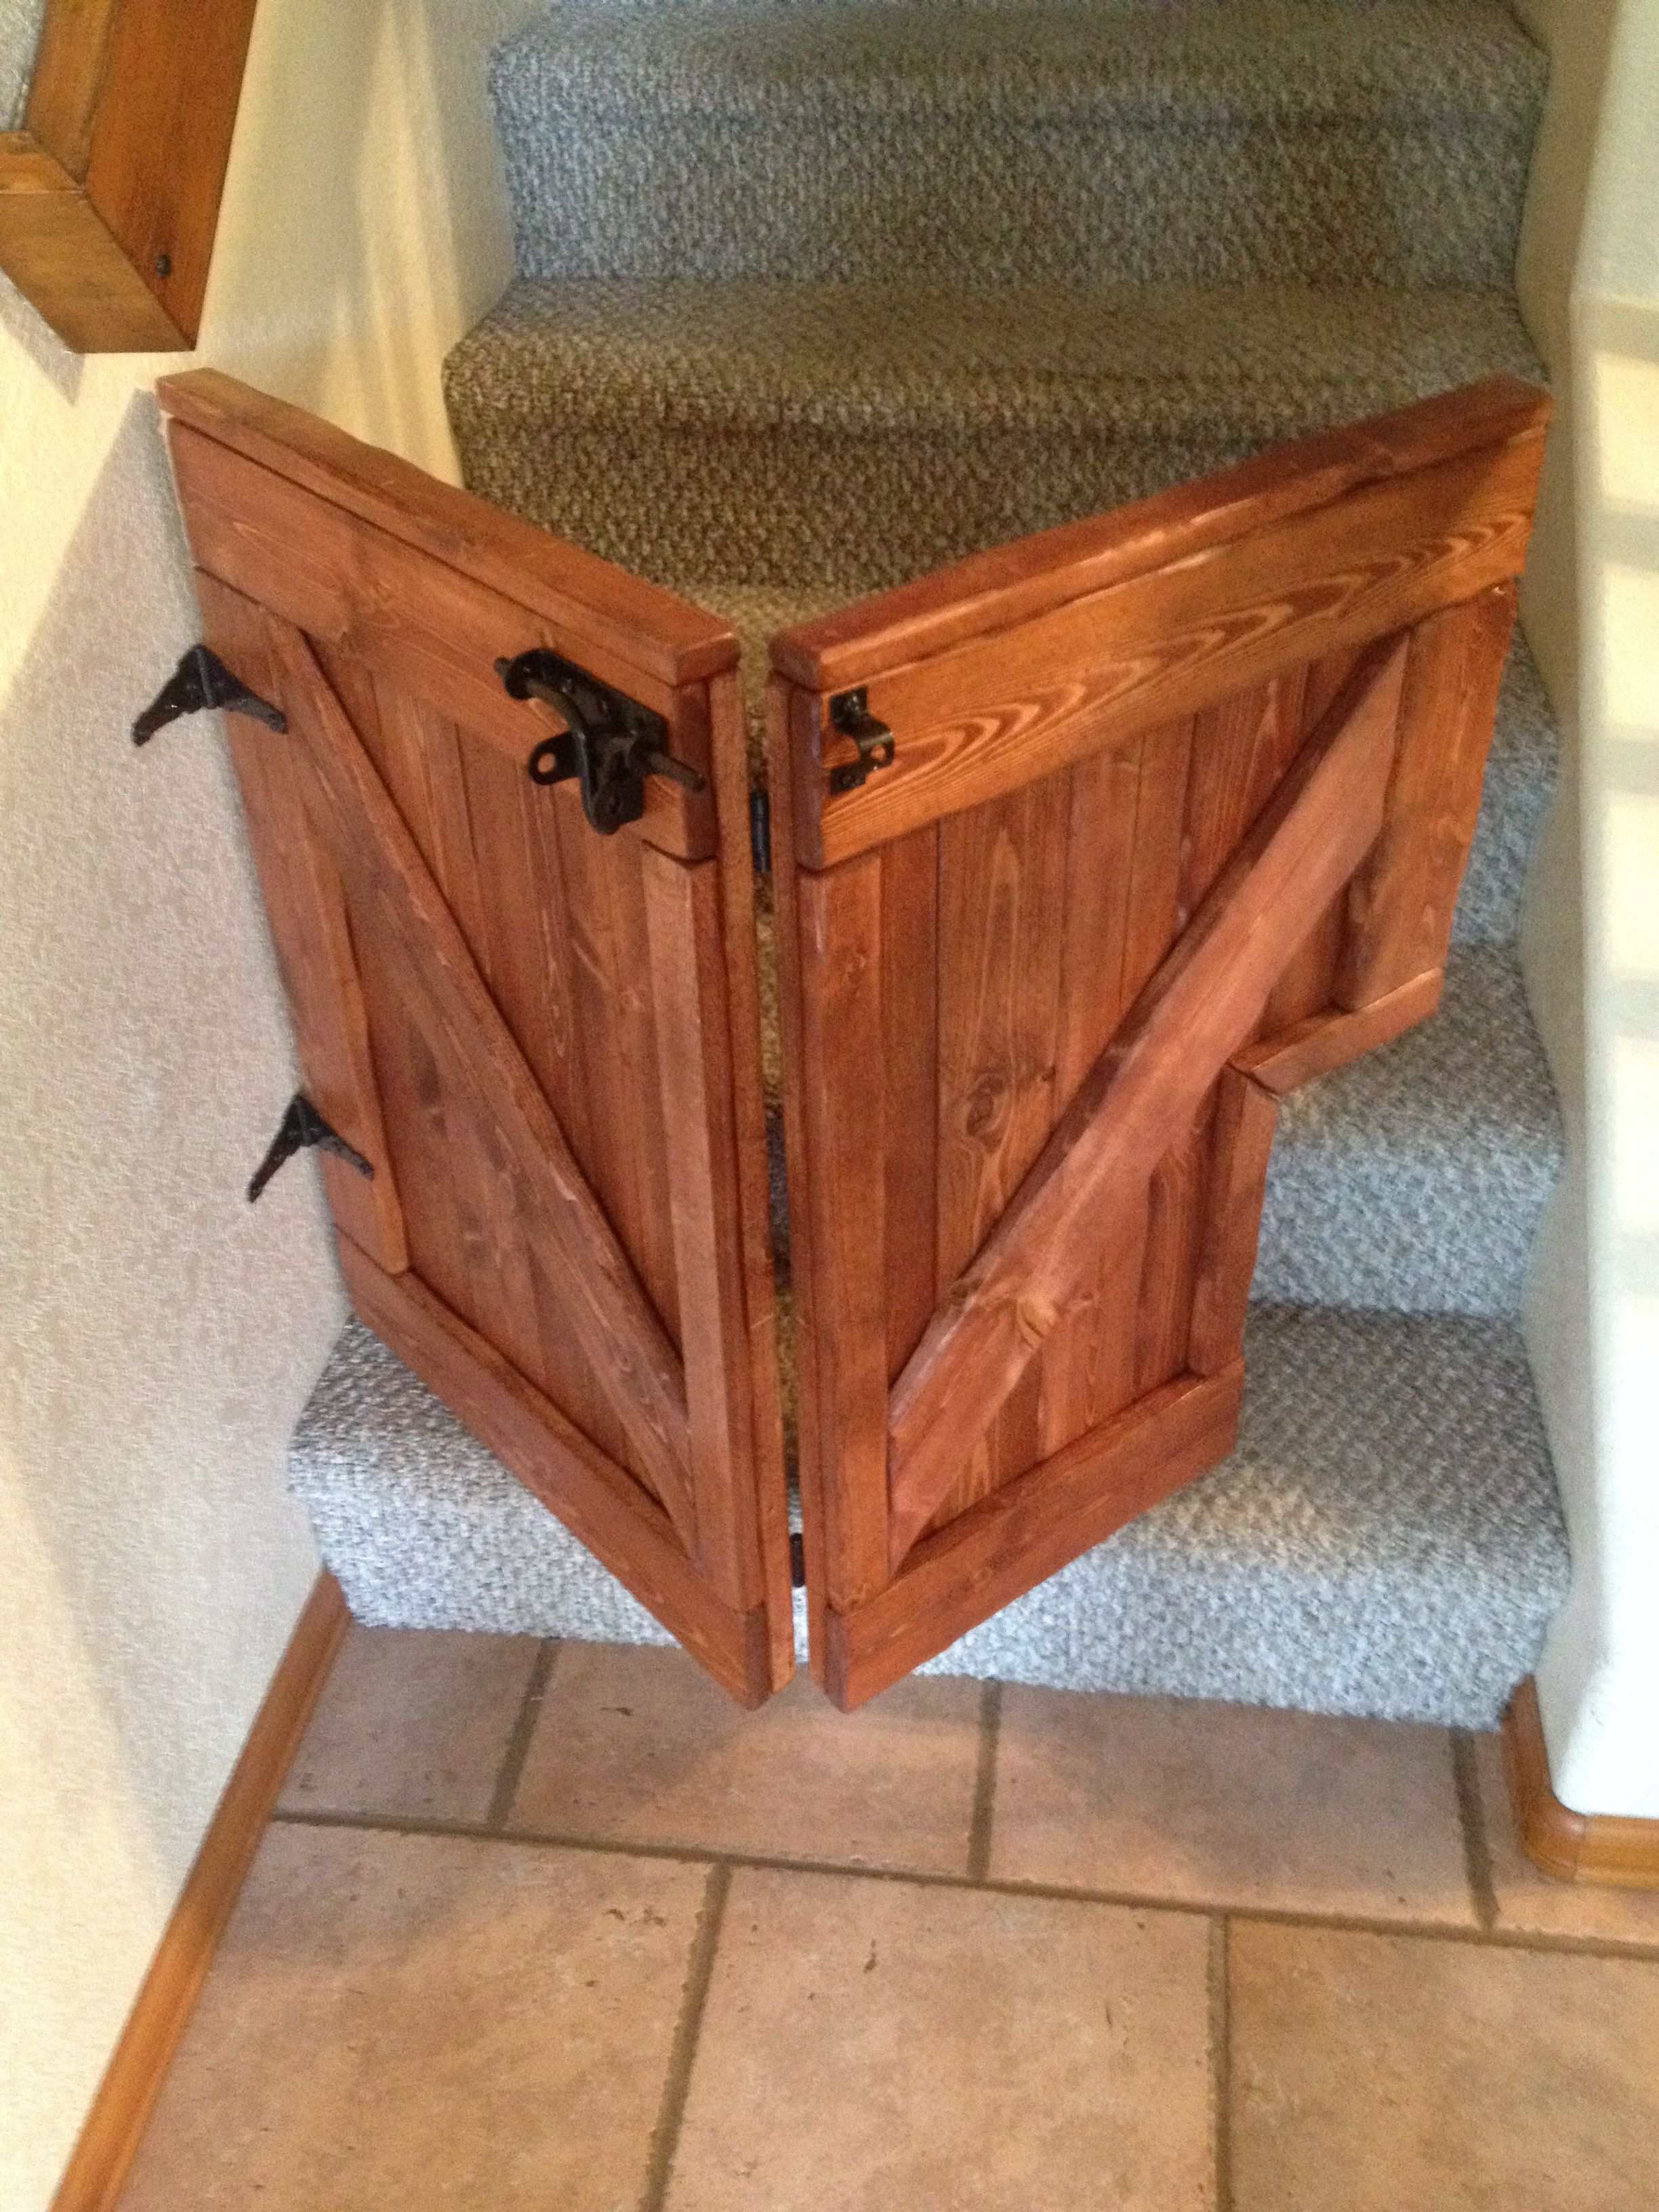 baby gates for split level homes - Google Search | new house ...